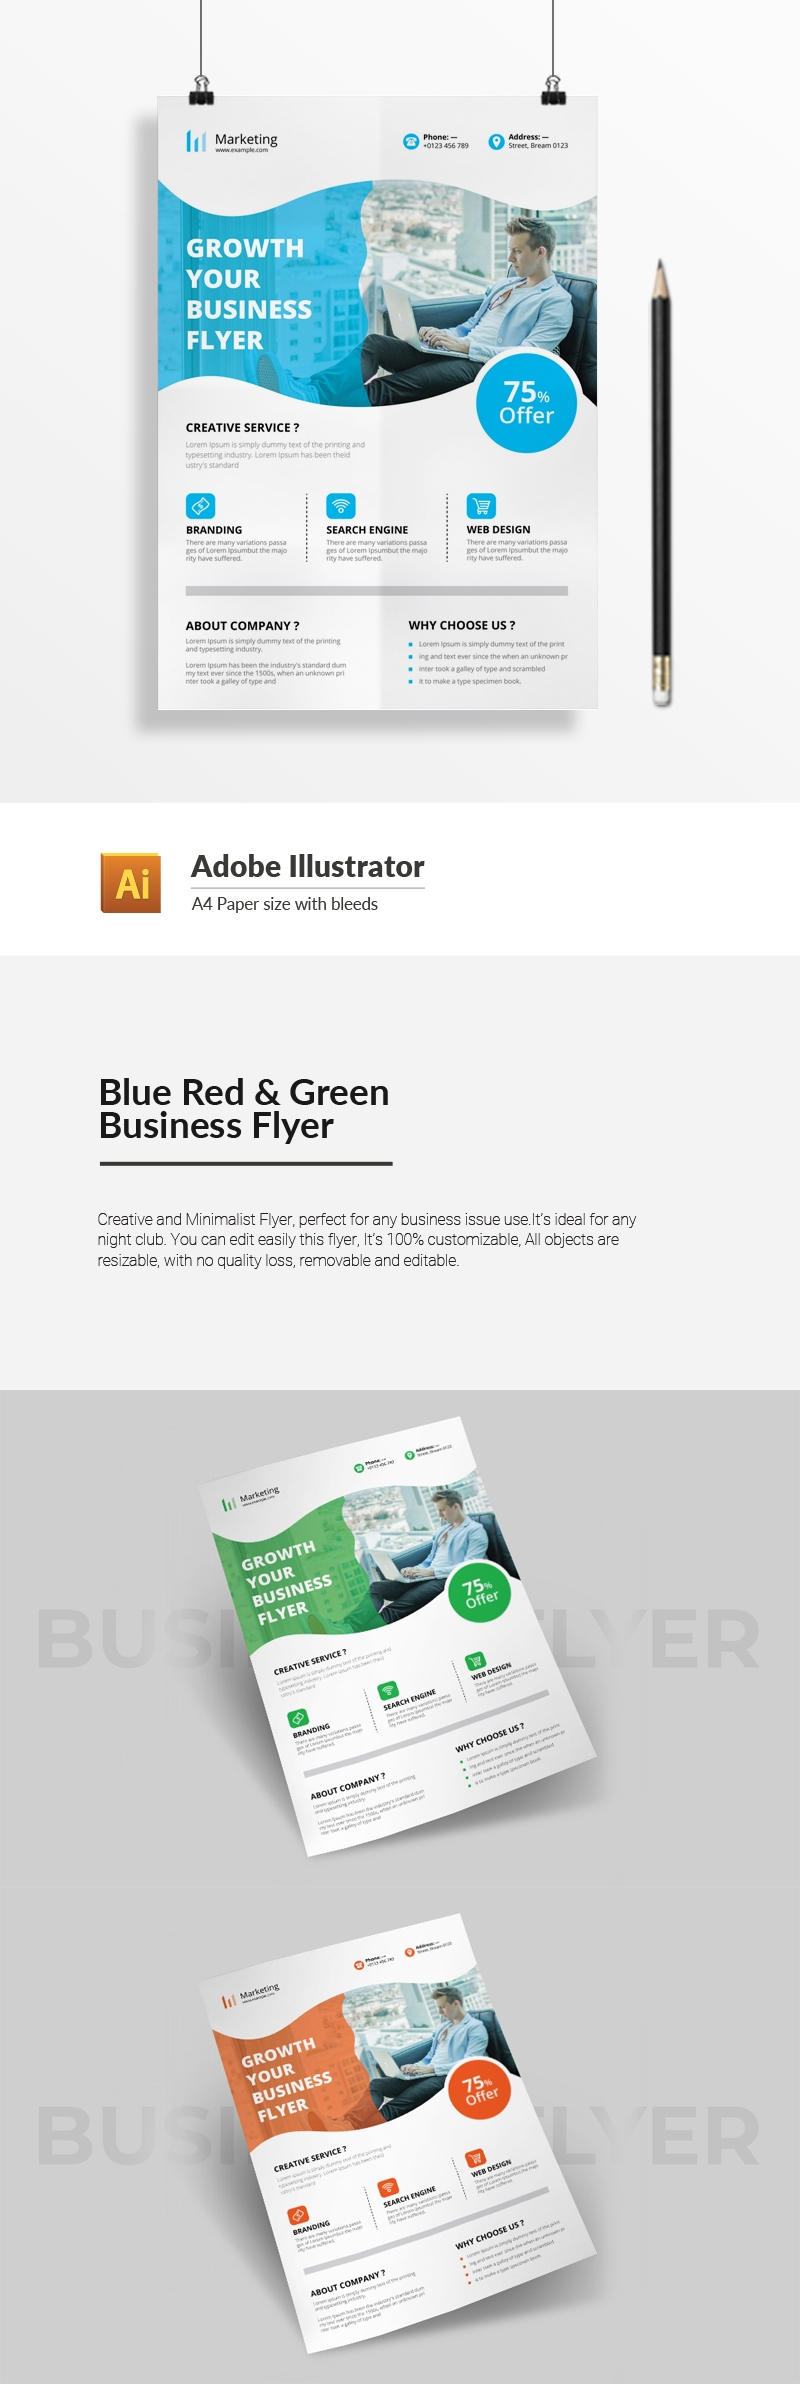 Blue Red & Green Business Flyer